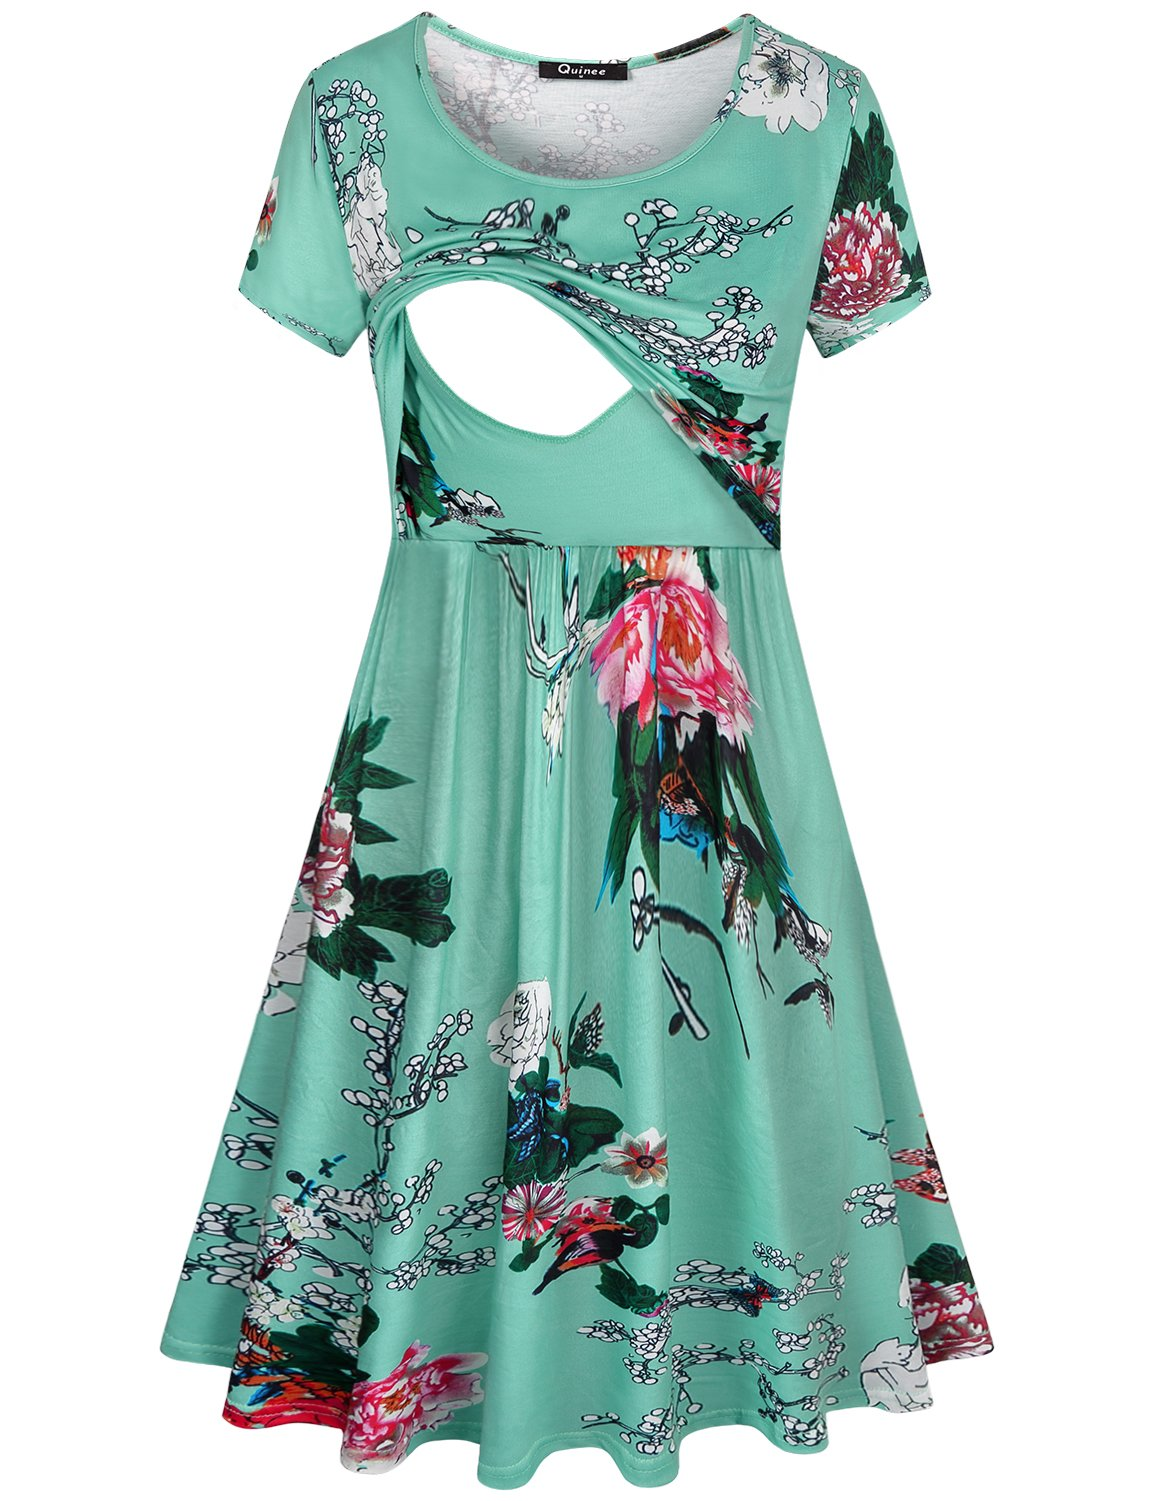 Quinee Maternity Nursing Dress,Ladies Round Neck Loose Fitting Cozy Lightweight Breathable Cotton Swing Tunic Dress Breastfeeding Outfit Slight Feminine Loose Style Pretty Tunic Floral Dress Green L